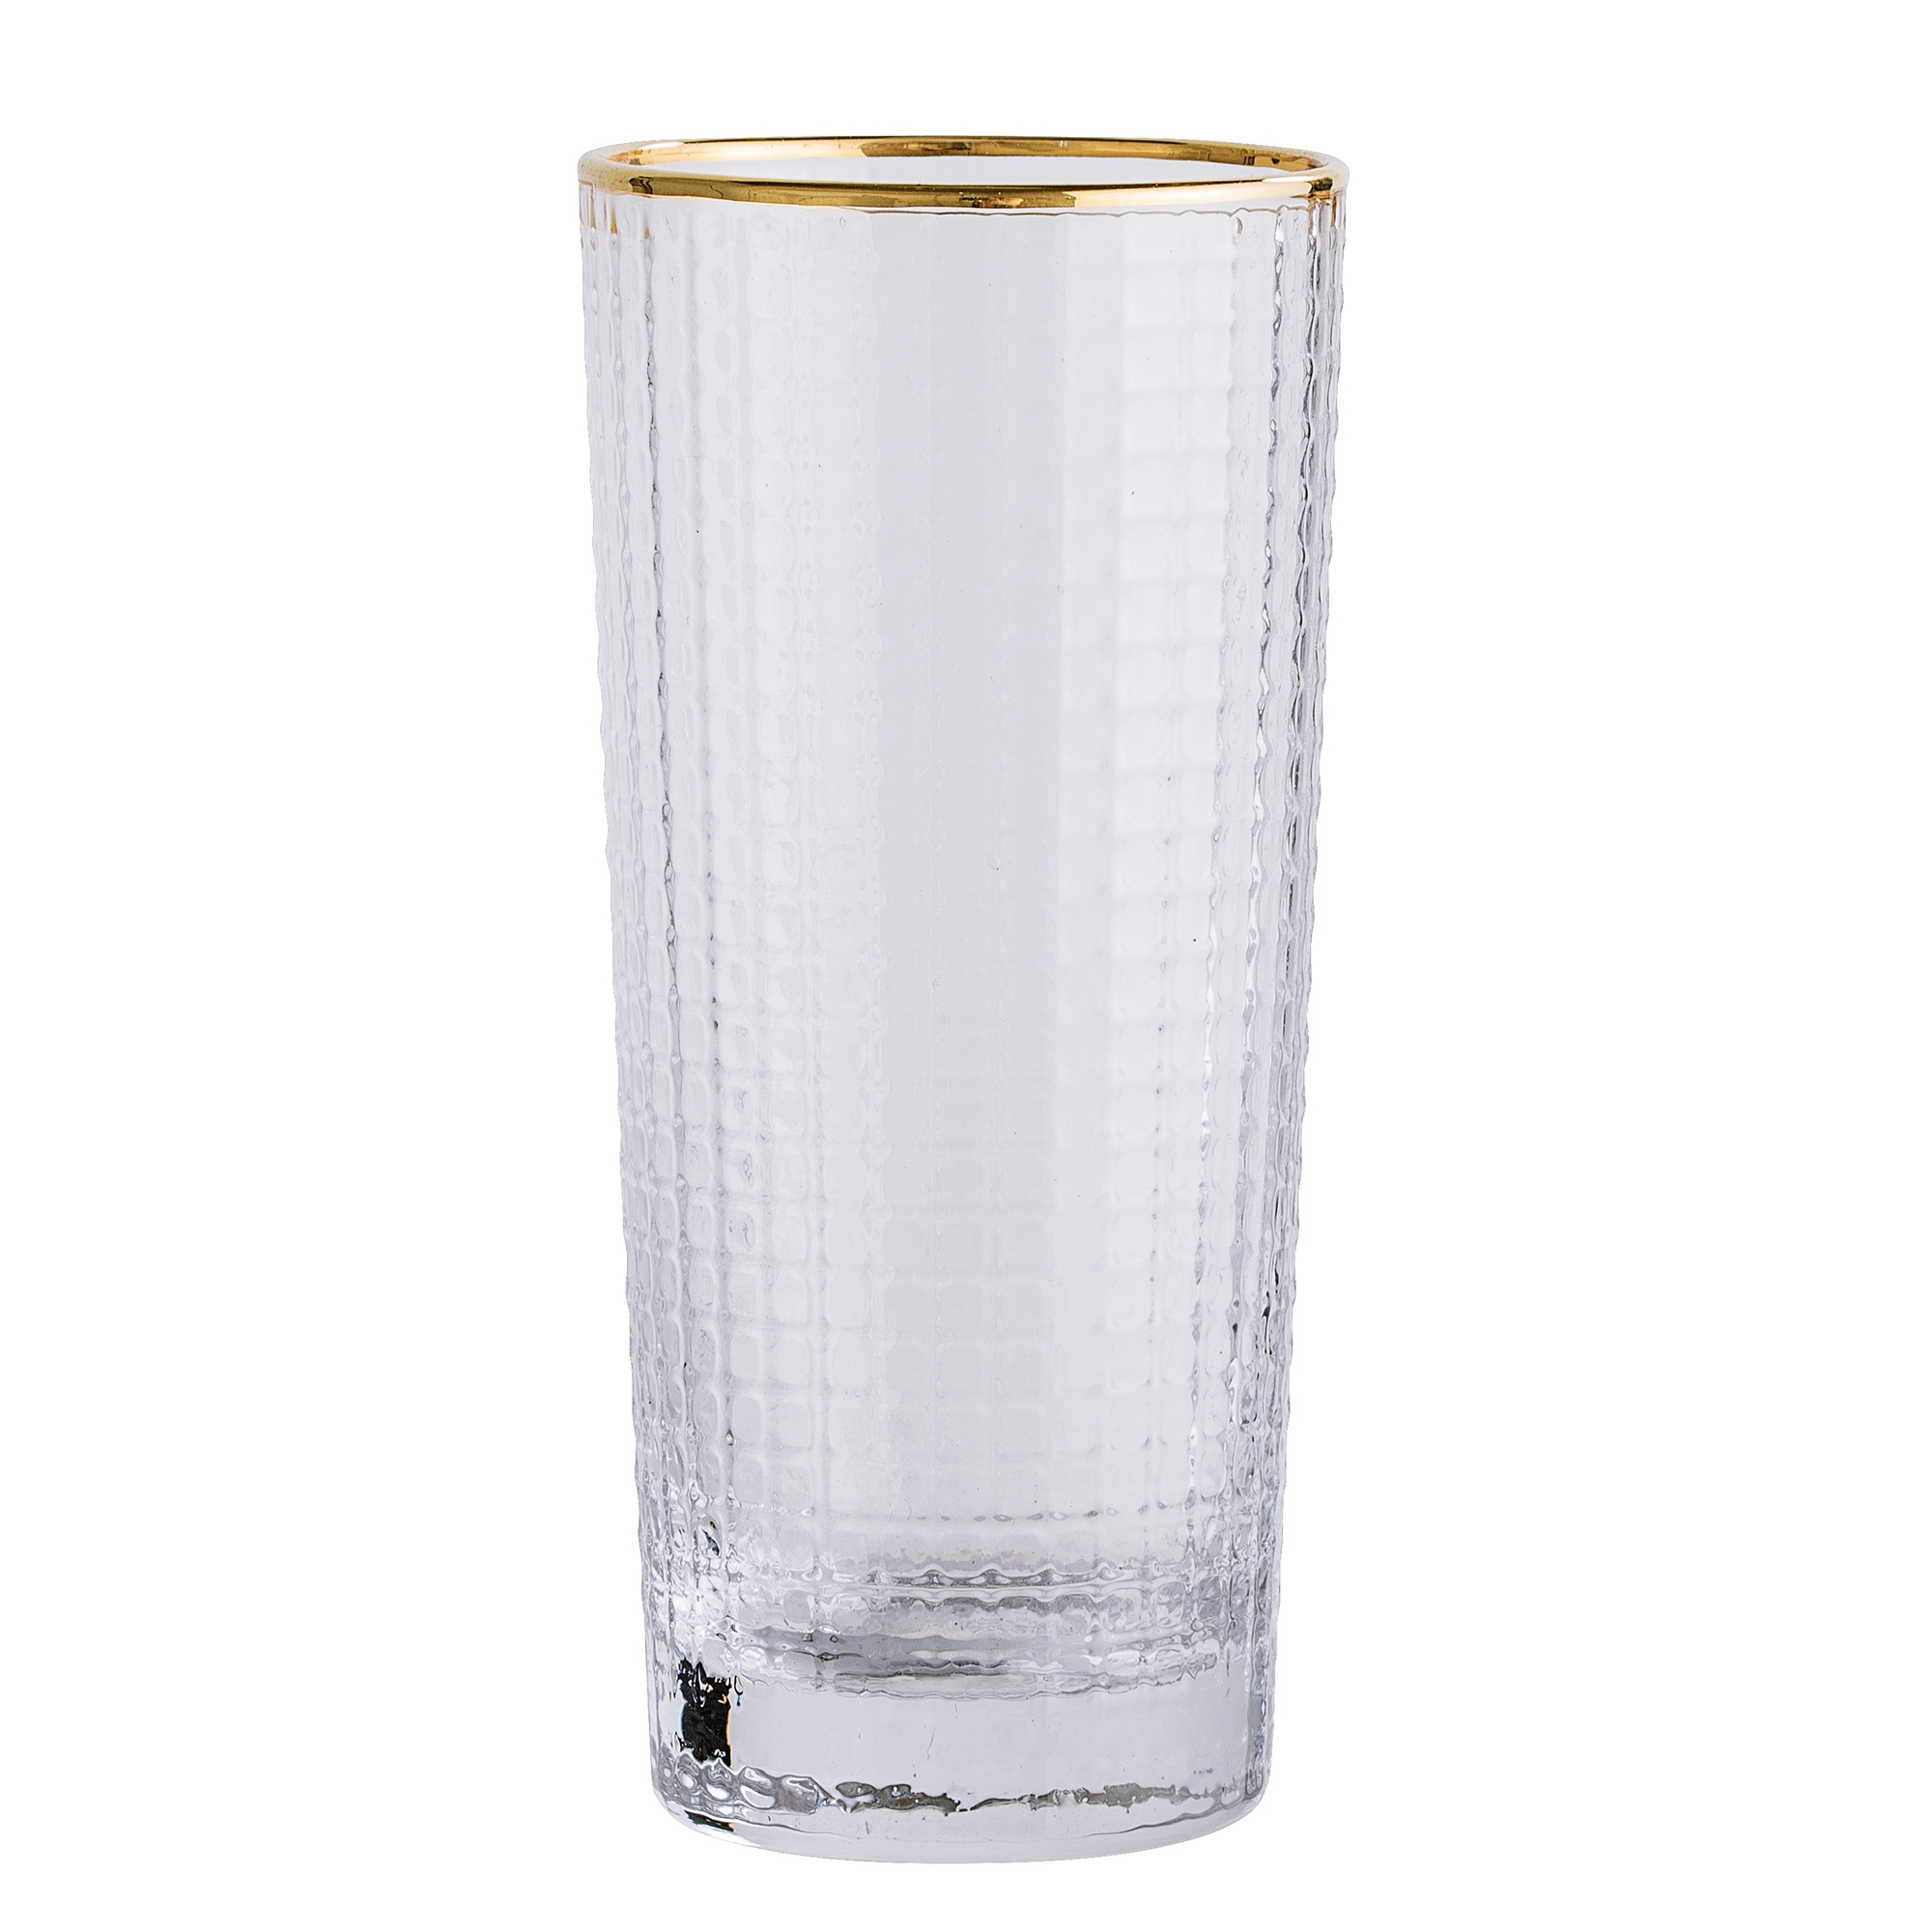 #024   Gold Edge Drinking Glass   6.5cm x H13.5cm Hire Price - £3 Minimum Order 10 Current Stock Available 60